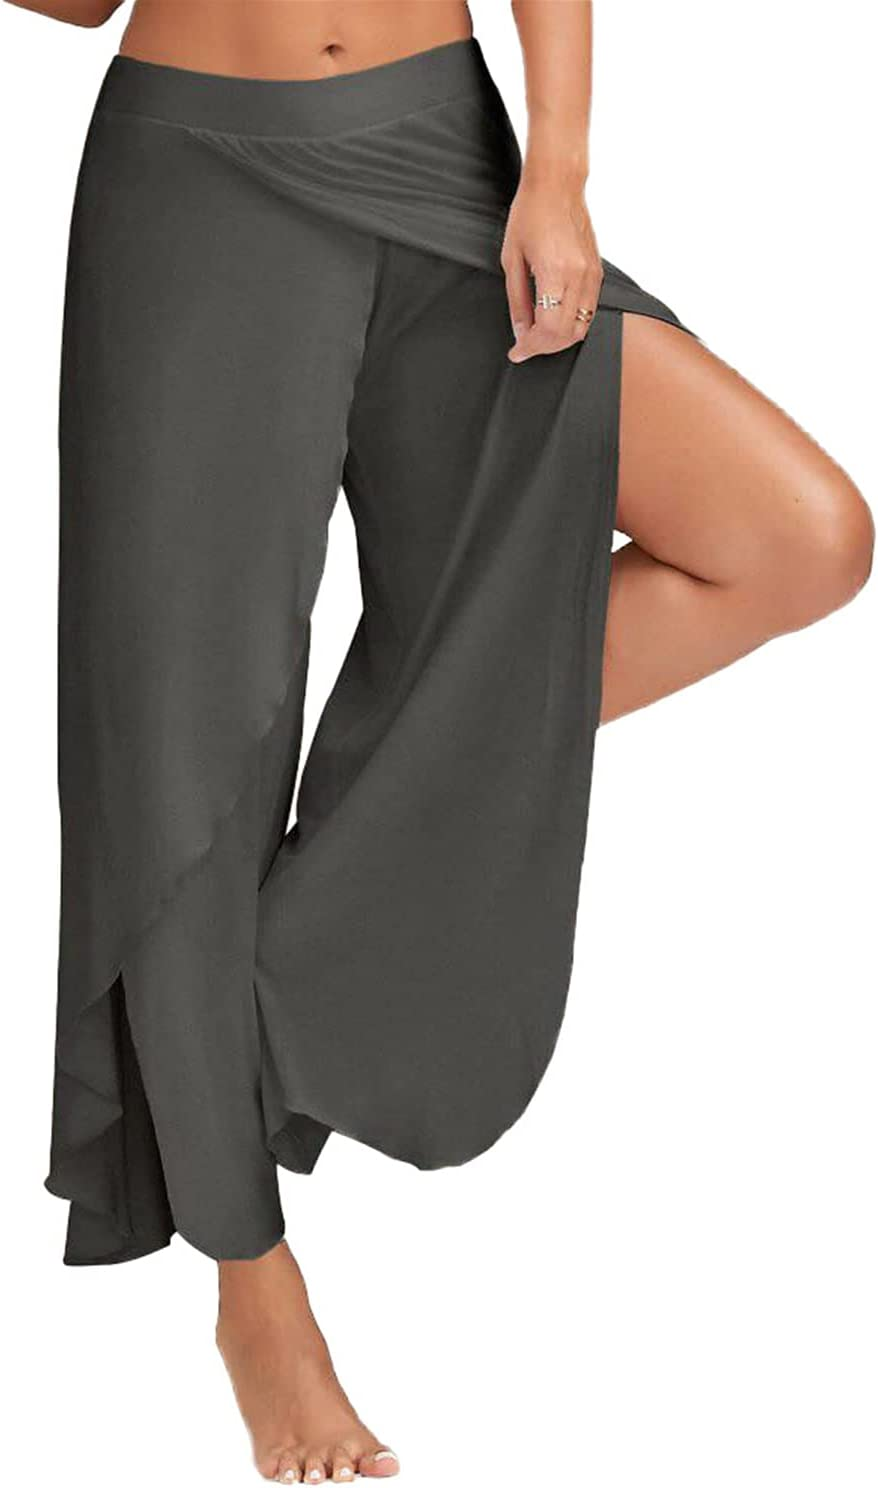 Women's Surprise price Wide Leg Yoga Pants Free shipping anywhere in the nation Lounge Layer High Waist Split